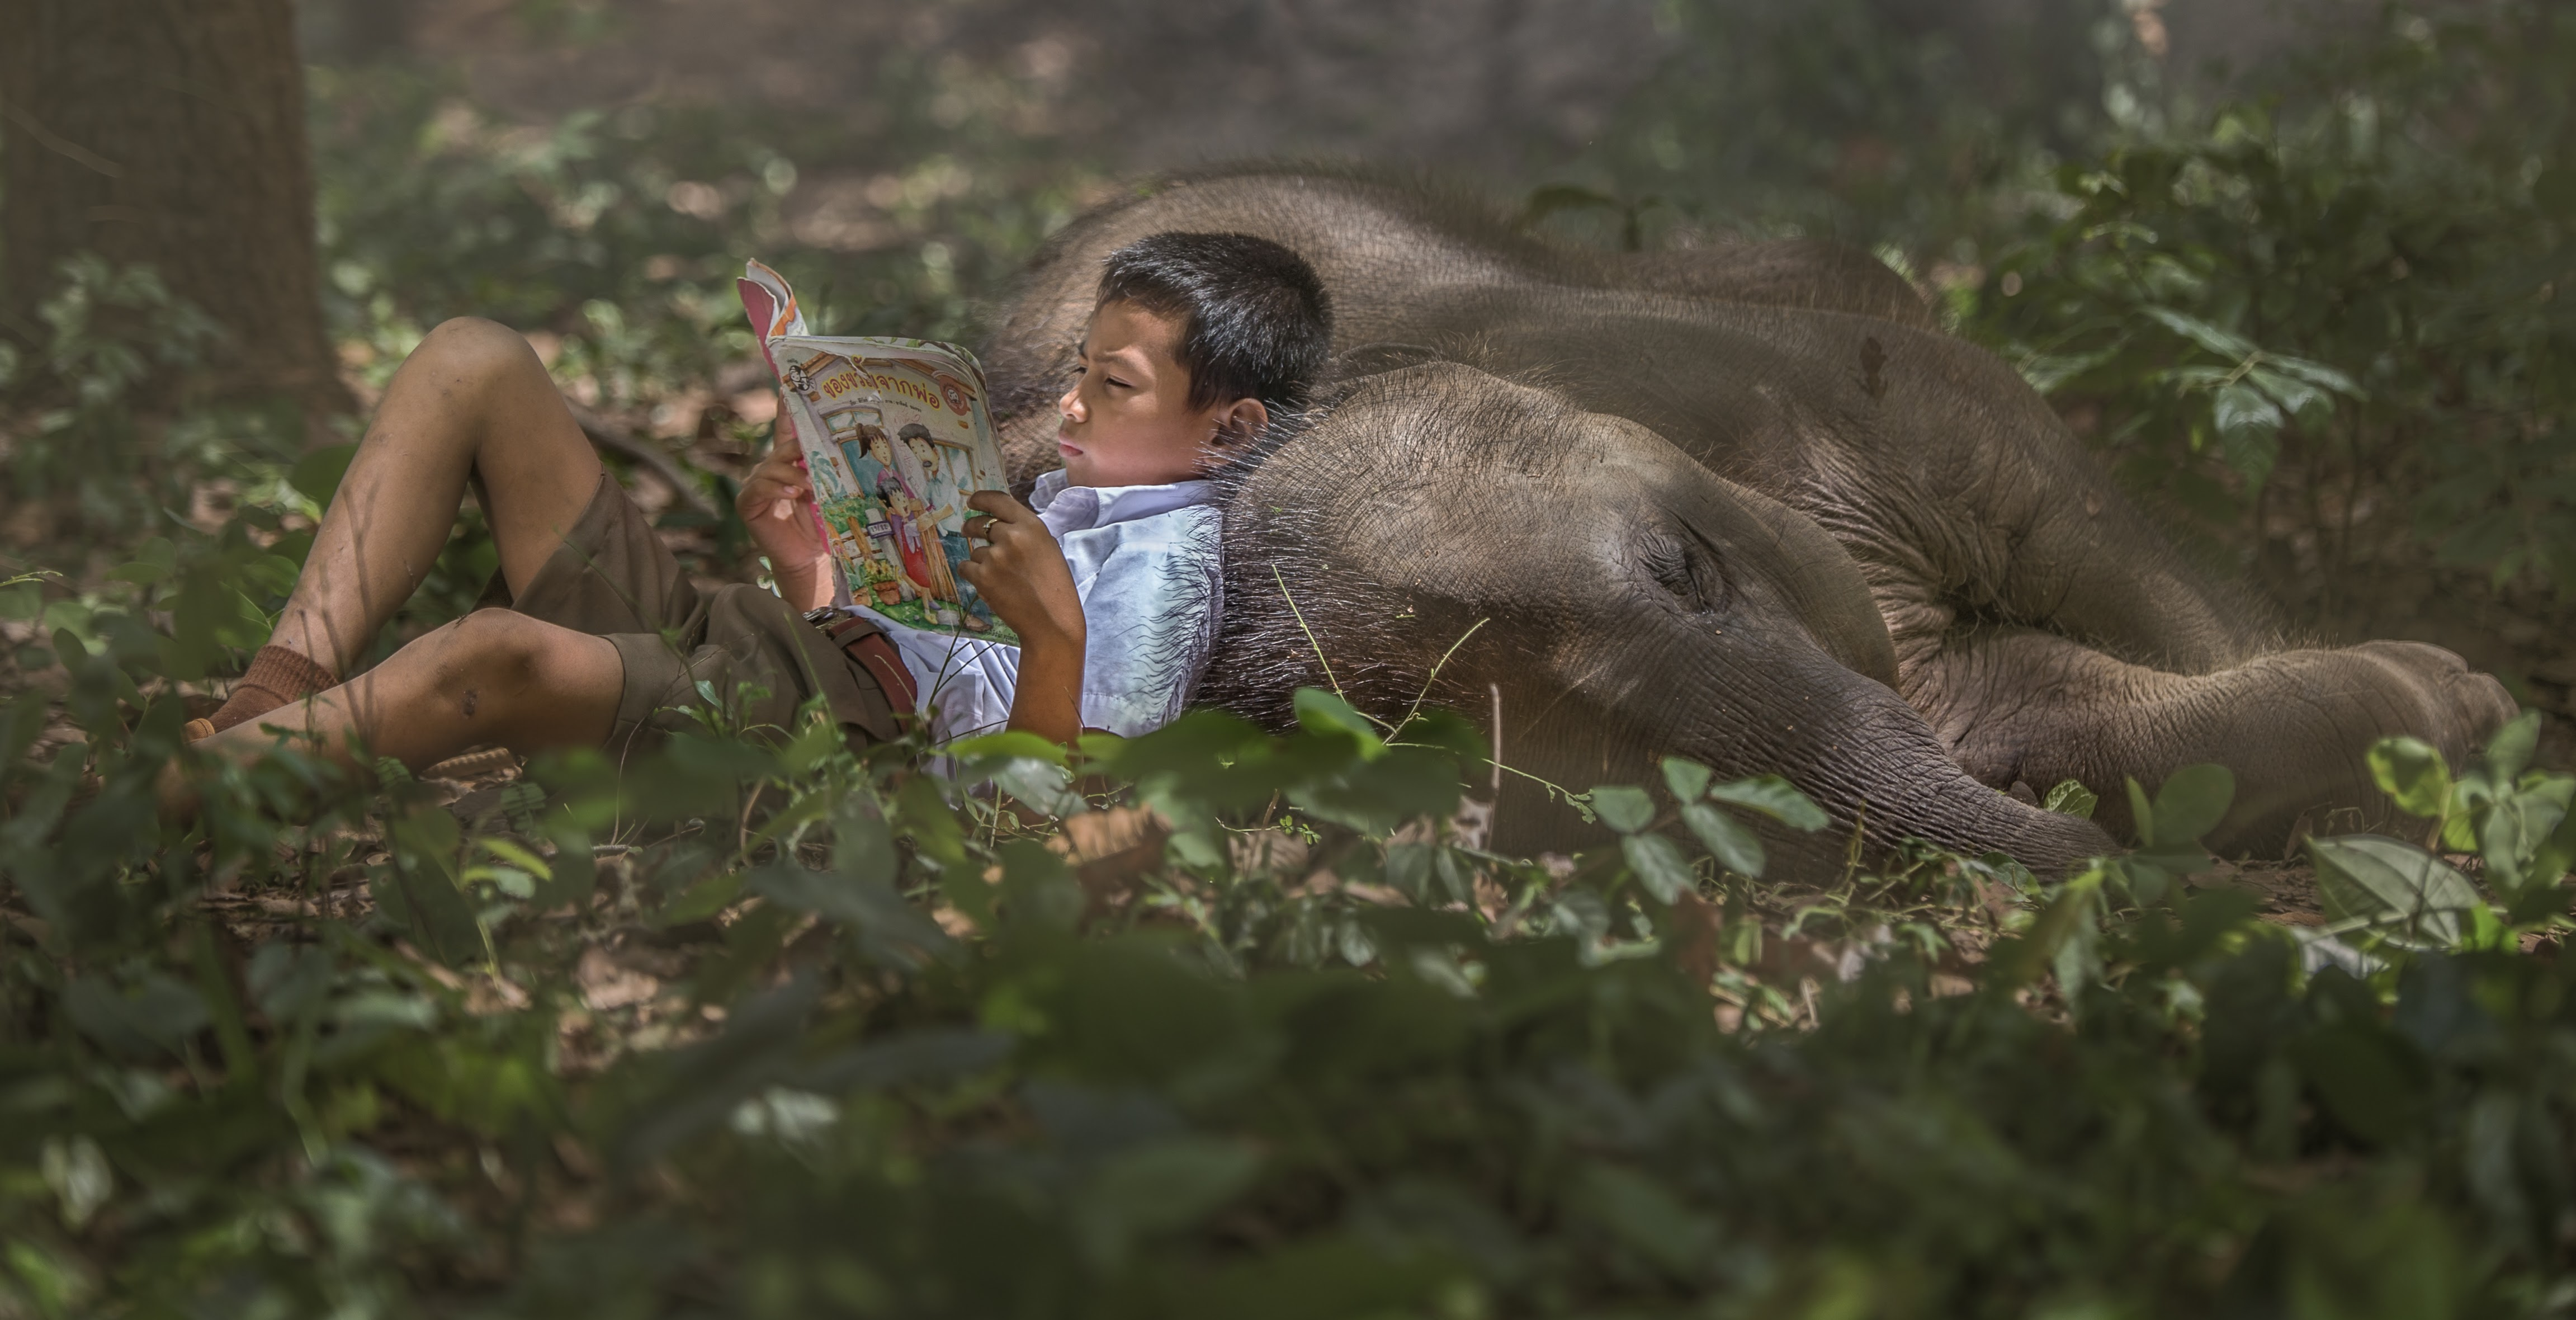 Reading a comic lying against a baby elephant